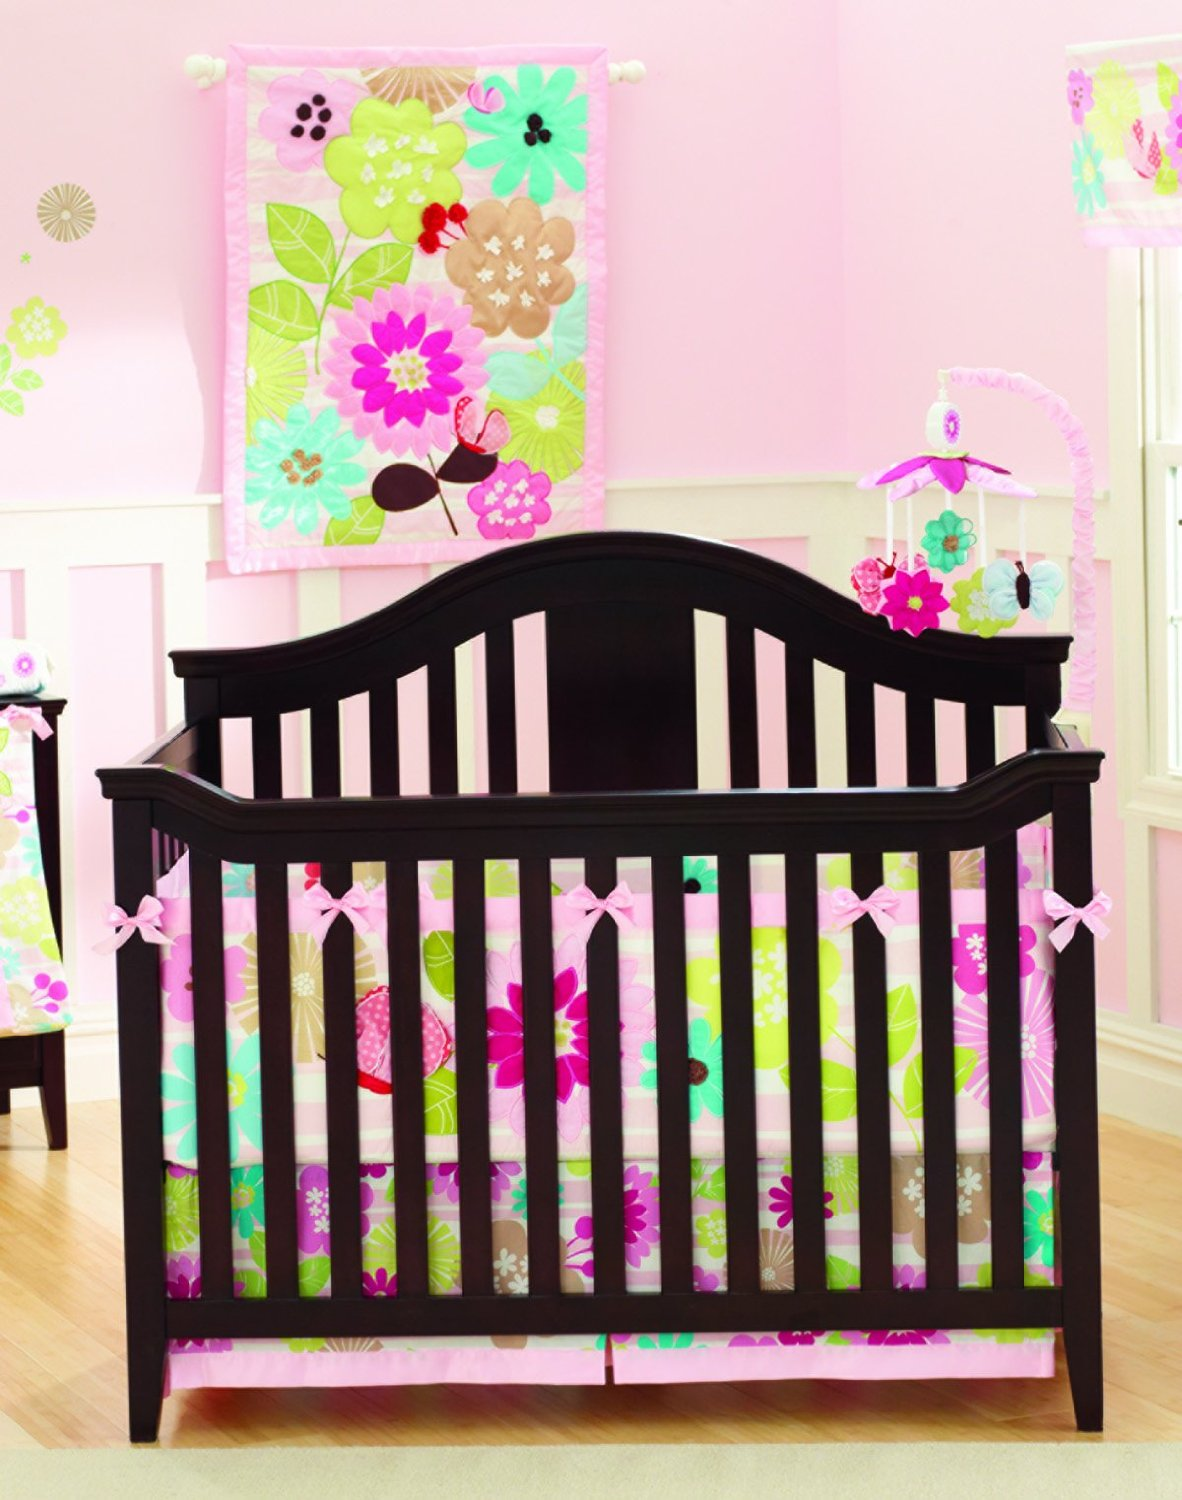 Summer Infant Petals Crib Bedding And Accessories